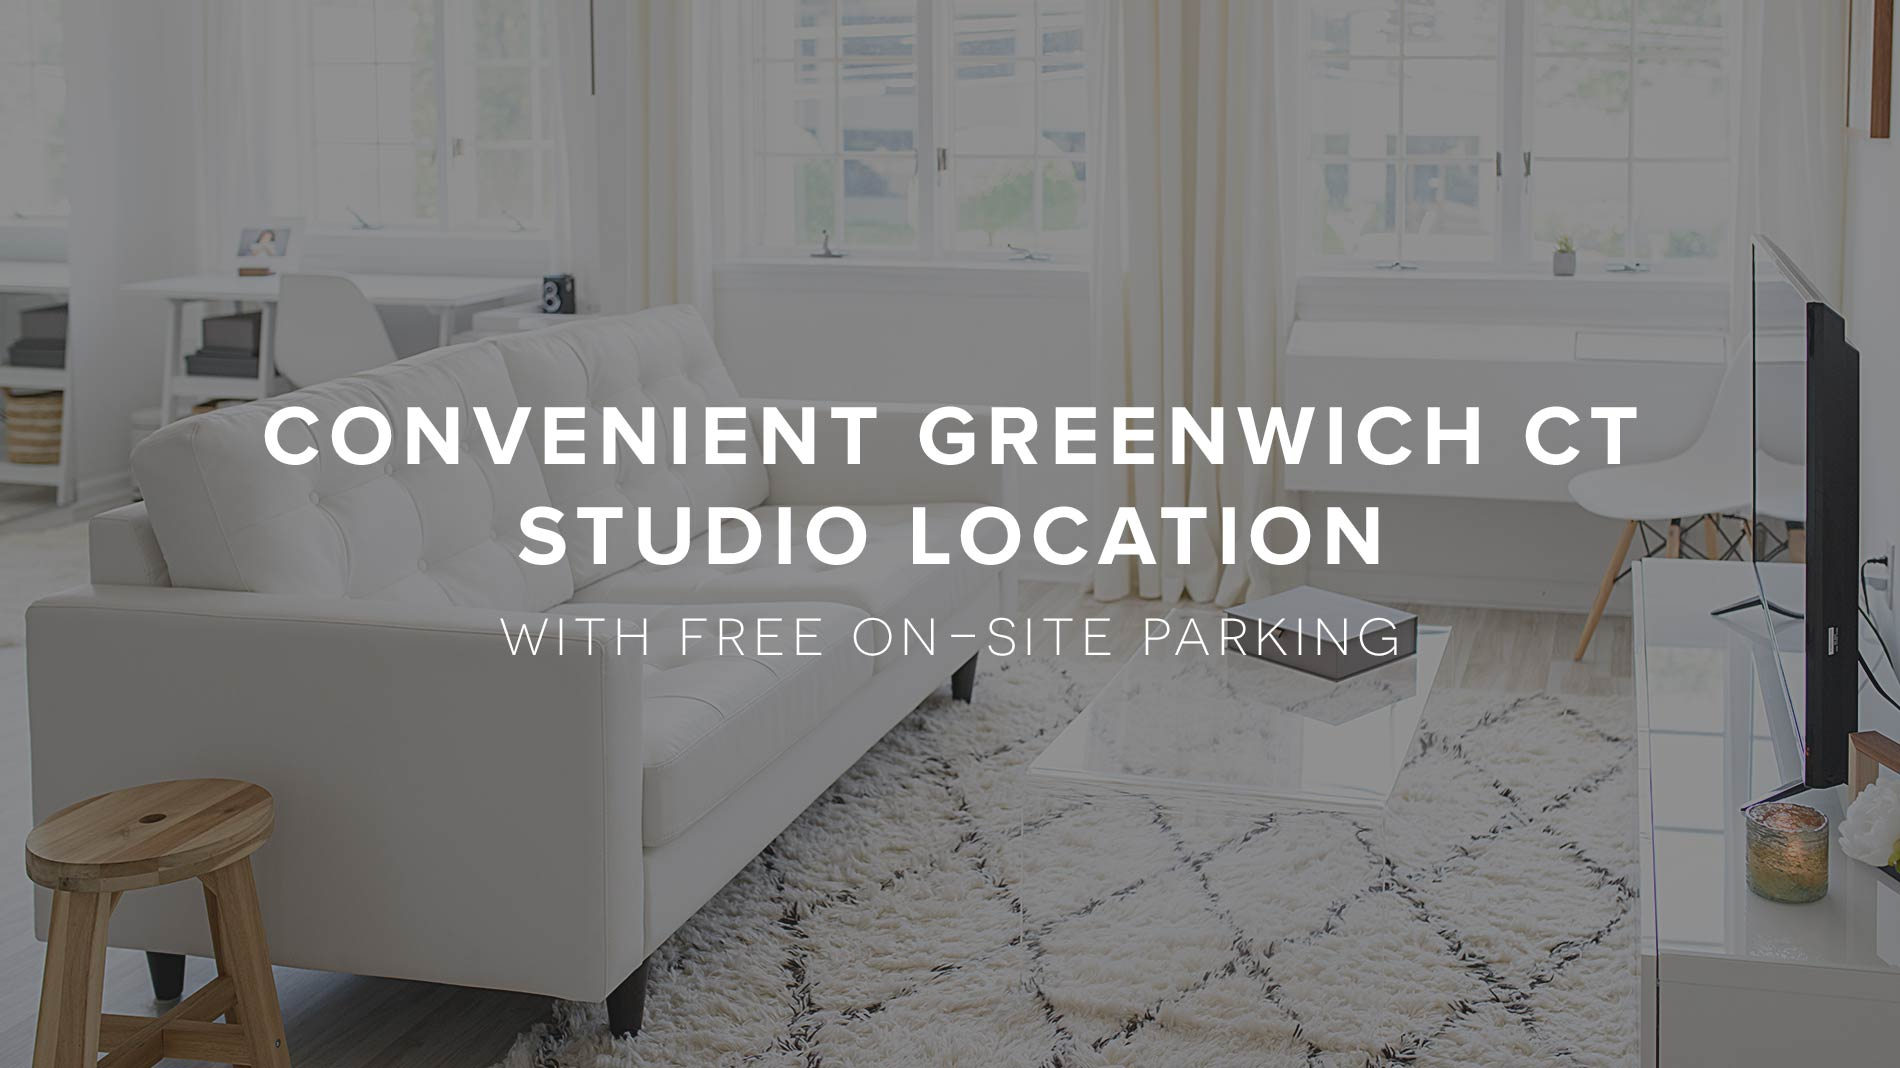 Convenient Greenwich CT Studio Location with on-site free parking